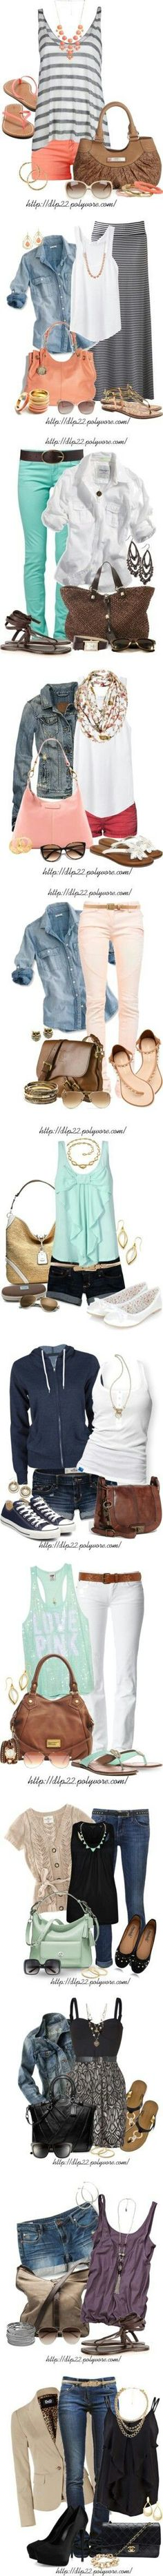 love outfits 1 2 3 4 6 9 10 11